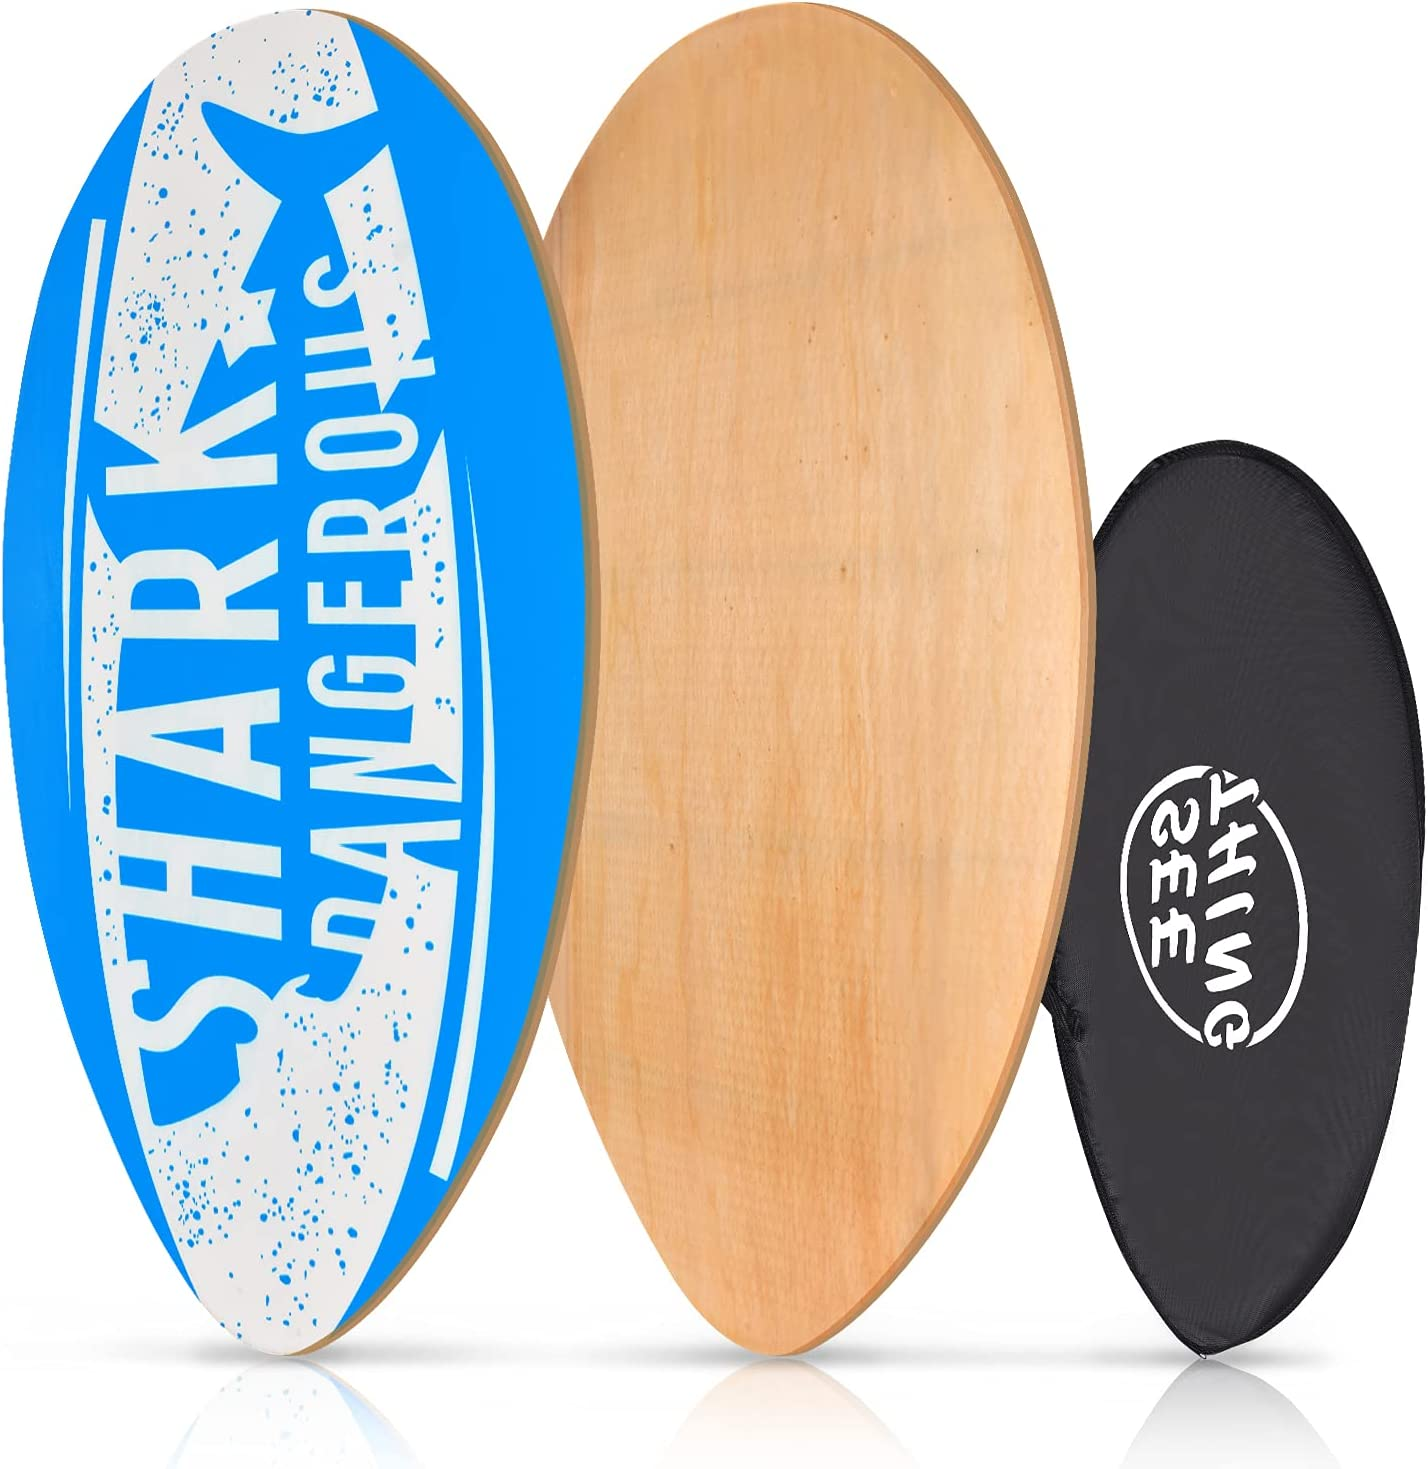 seething 35 Inch Skimboard with High Gloss Coat supreme Wood Now free shipping Skim Boar